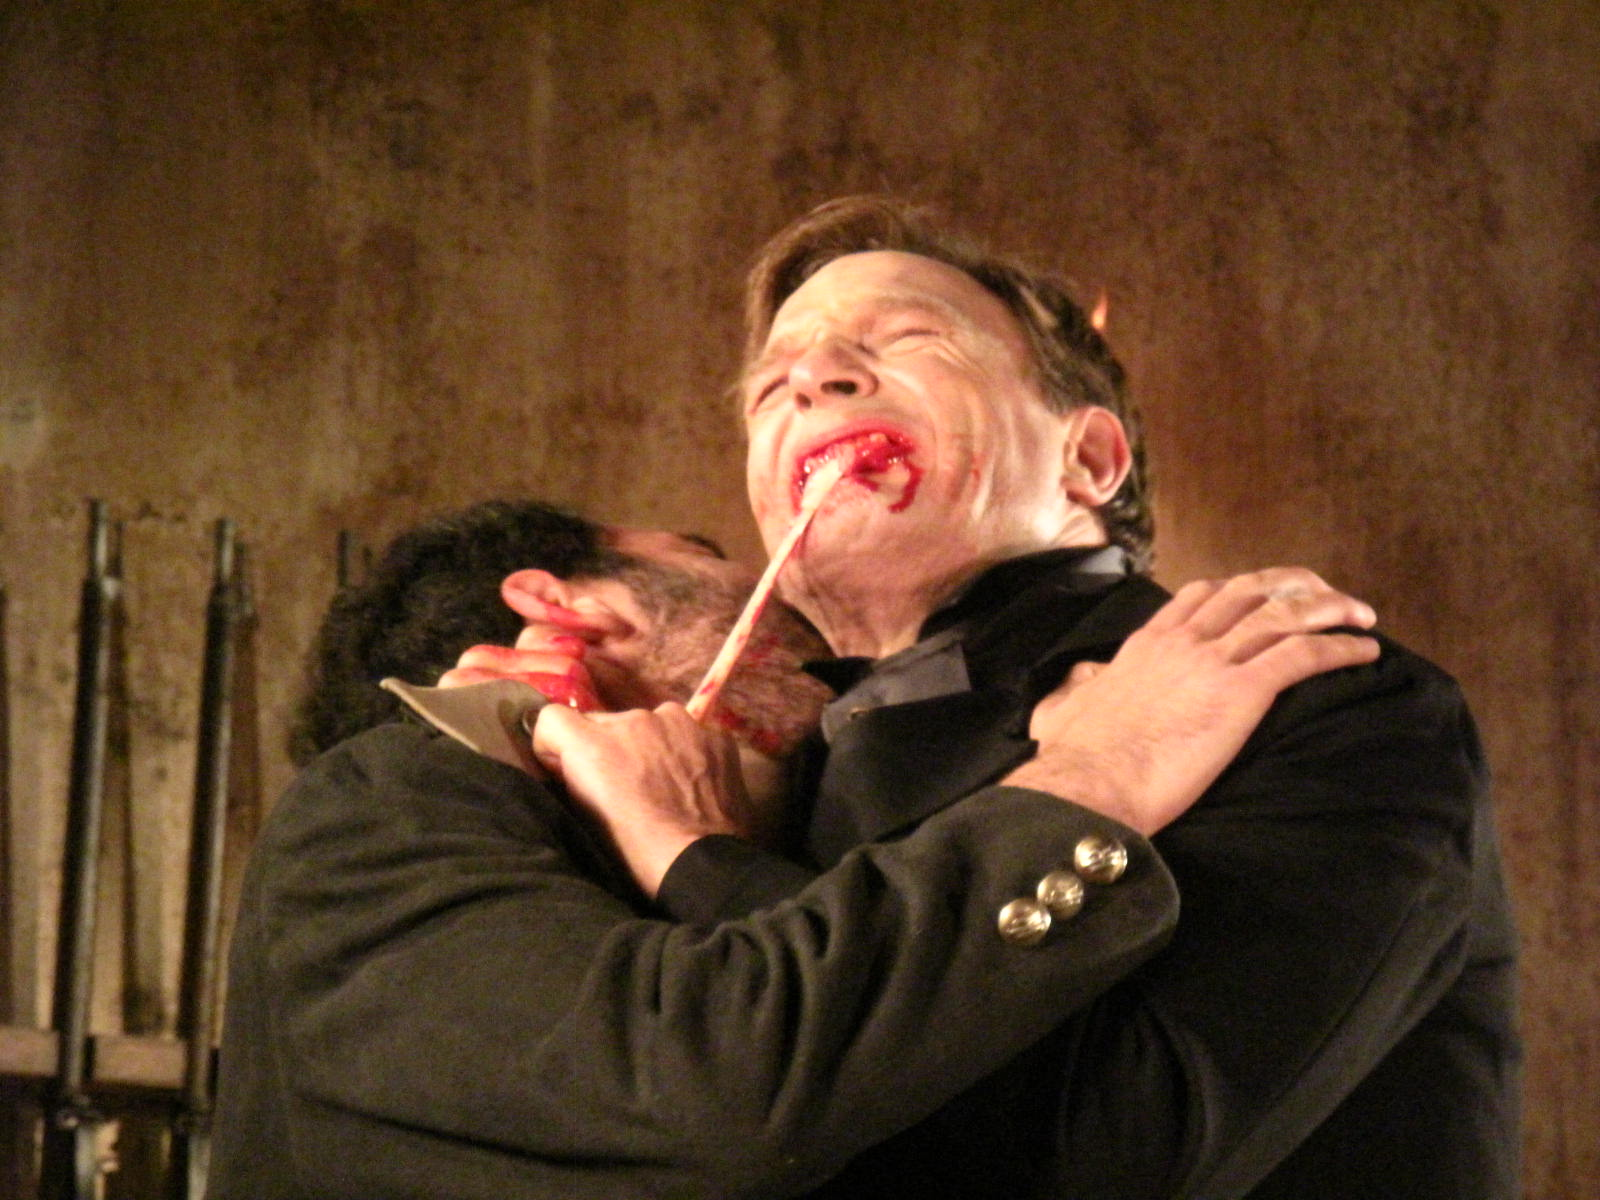 9.THOMAS  KRETSCHMANN TAKES A BITE AS THE UNDEAD COUNT IN ARGENTO'S DRACULA 3D